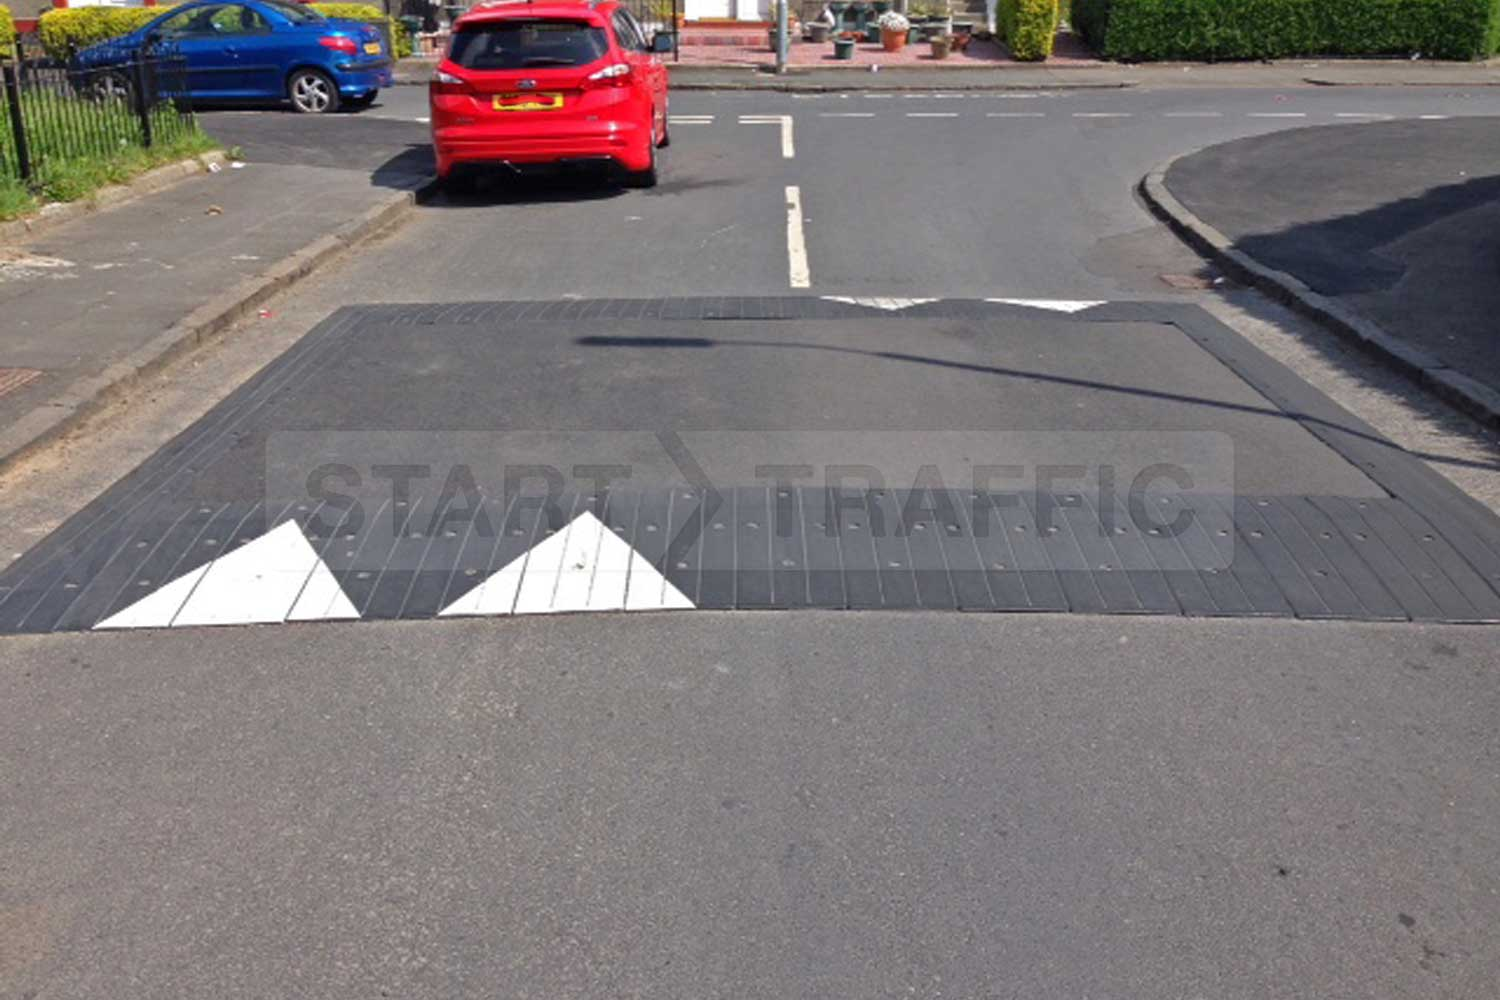 Rubber Speed Table Kit For Highway Amp Car Park Use